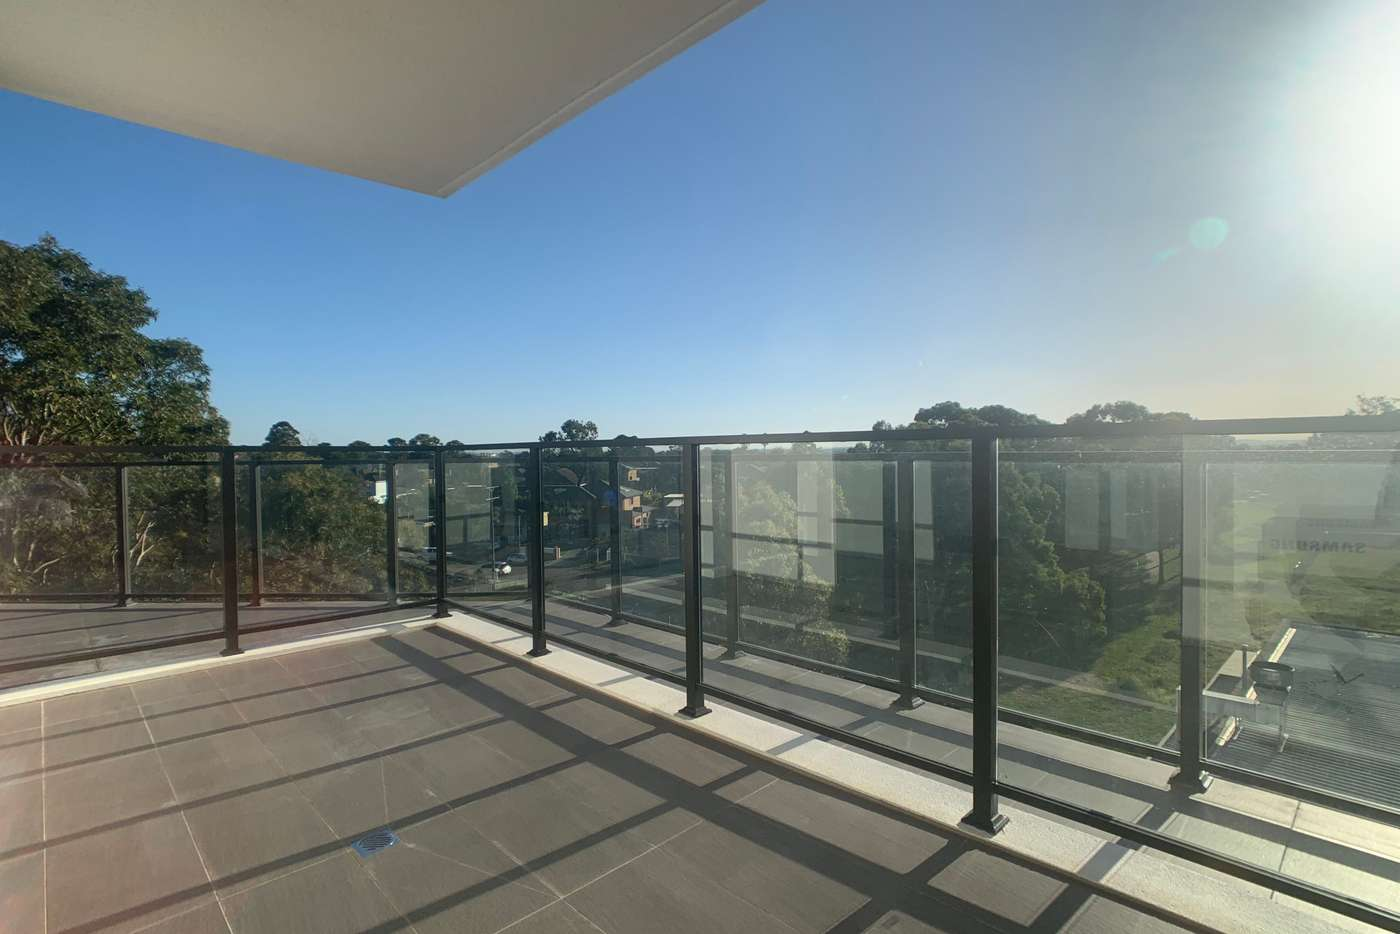 Main view of Homely house listing, 413/888 Woodville Road, Villawood NSW 2163